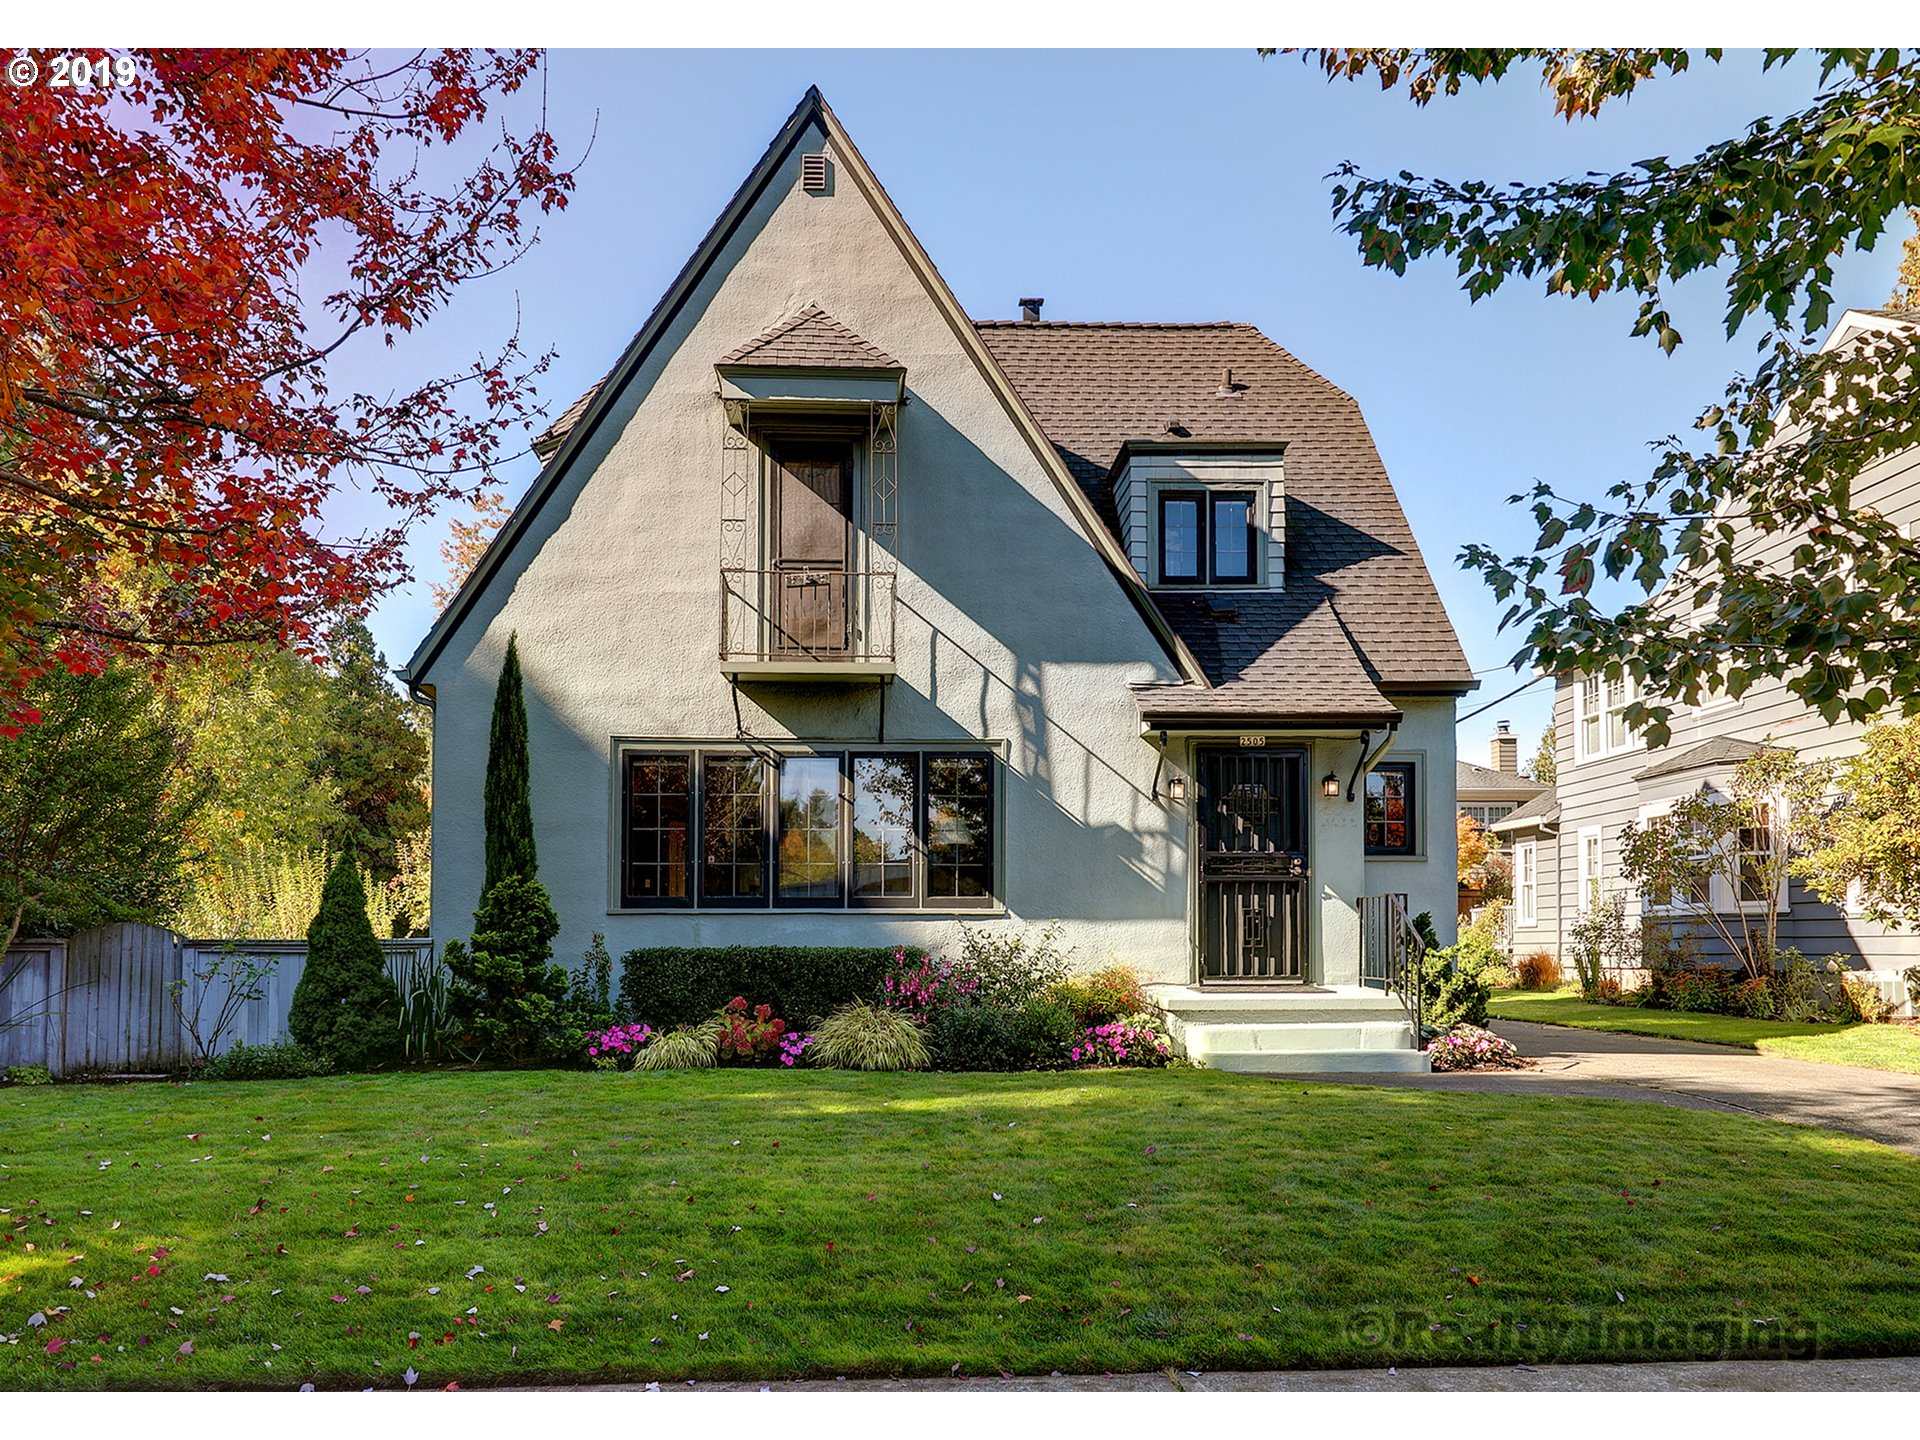 From the days of old Portland. Meticulously maintained English Tudor that backs up to Grant Park. Beautiful original leaded windows,stained glass,hardwood floors,French doors,kitchen nook & gas fireplace. Basement is a finished bonus space, plus room for a shop/craft area.Step out into an entertainers dream backyard. separate building 2 car garage.Driveway is not shared. Near greatly rated schools, cafes, transit, trails and bikeways. [Home Energy Score = 2. HES Report at https://rpt.greenbuildingregistry.com/hes/OR10098797]